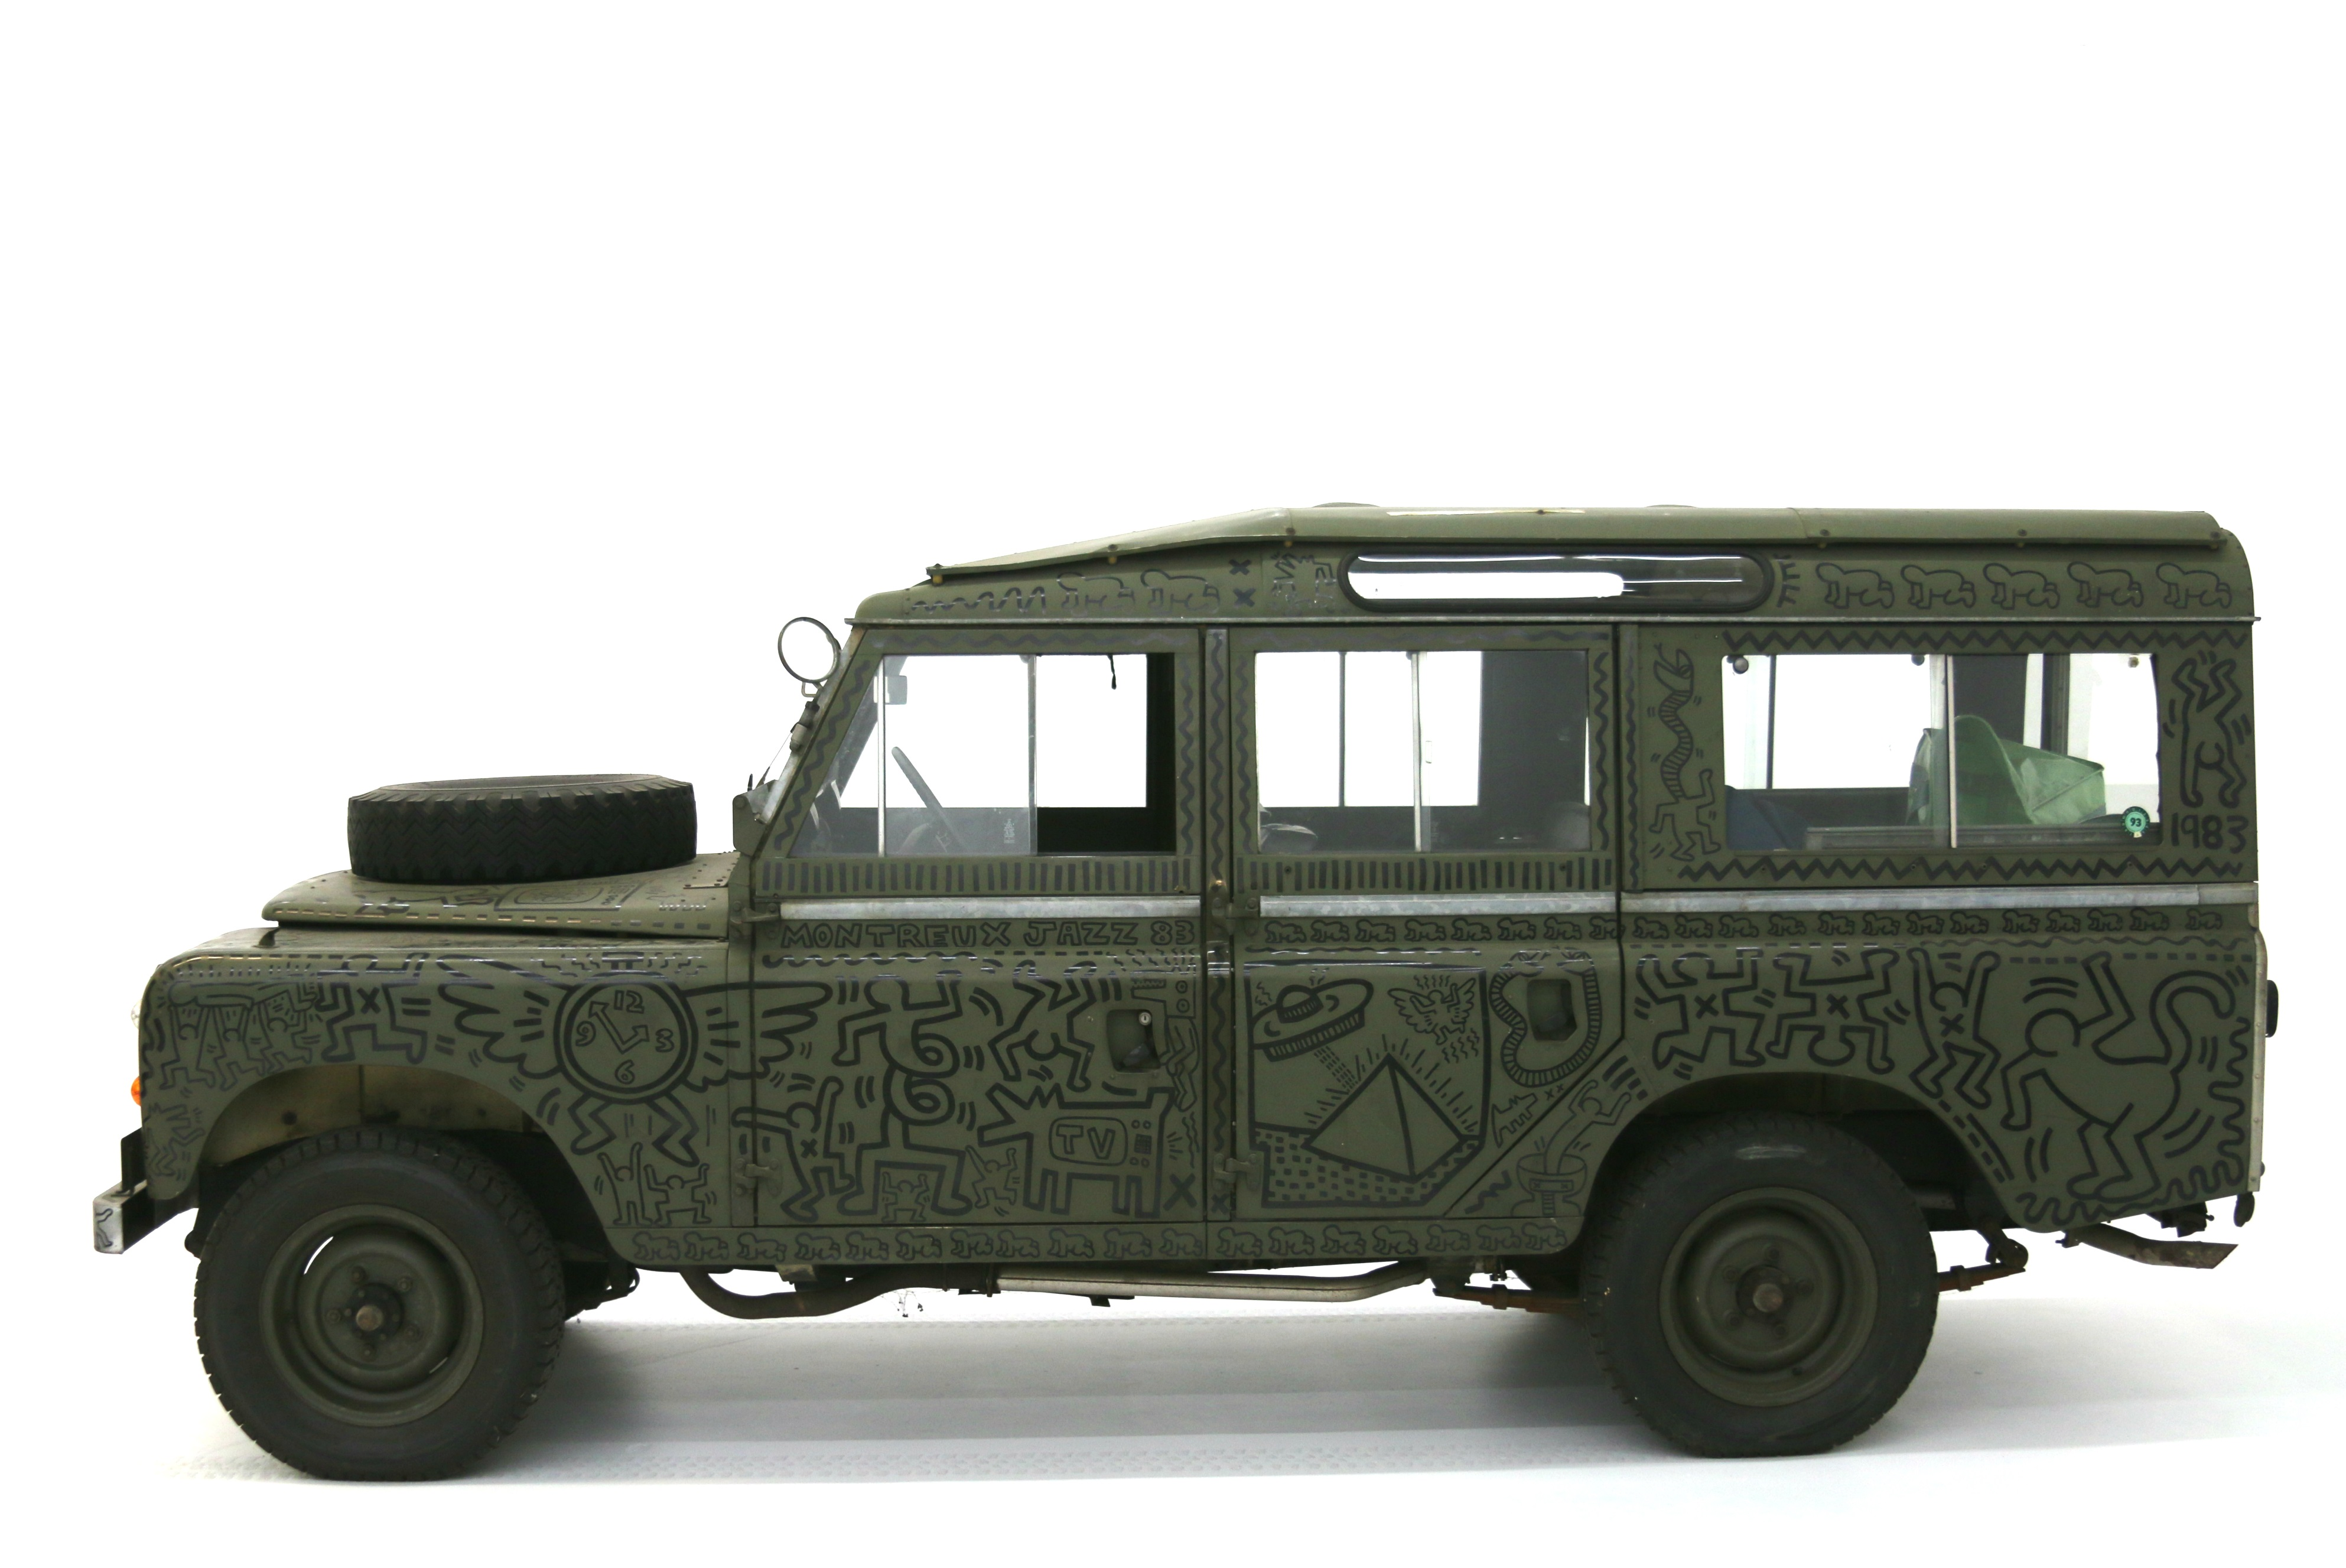 World debut of the 1971 Land Rover Defender